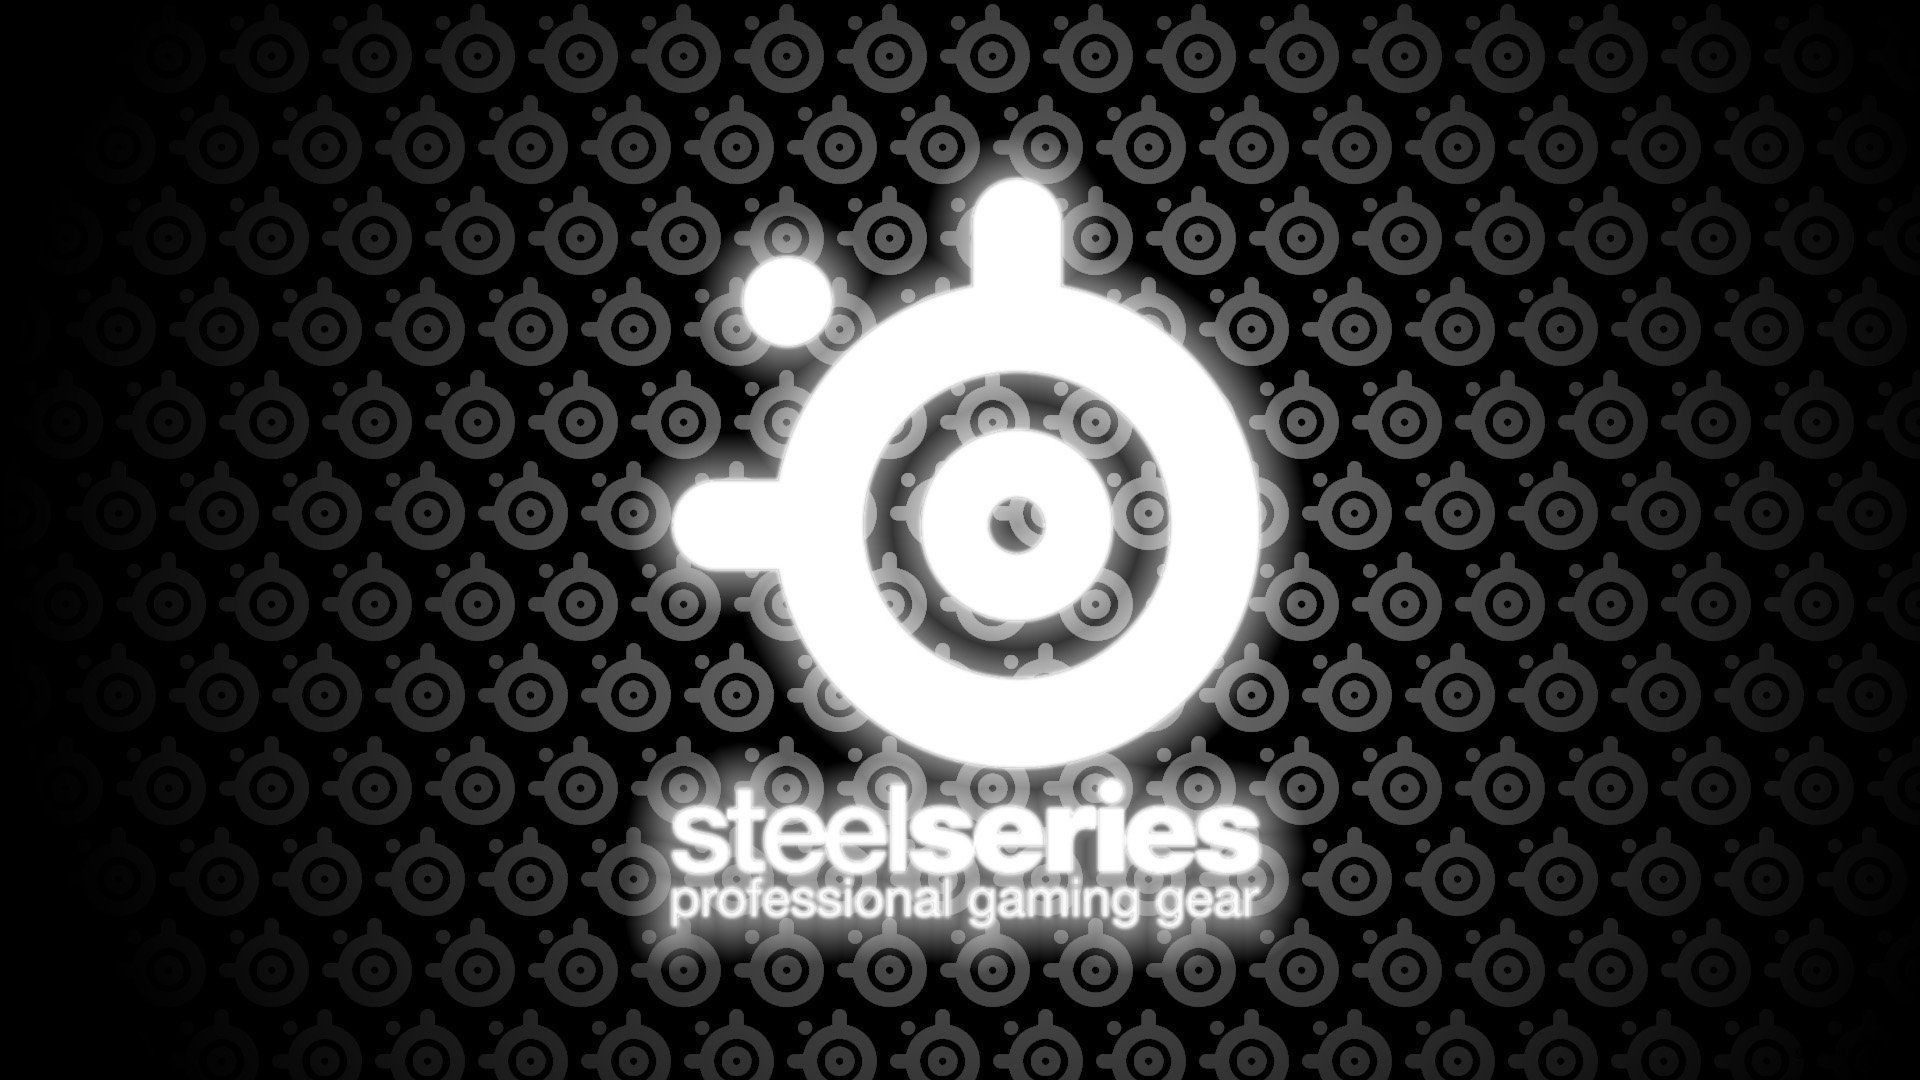 STEELSERIES Gaming computer wr wallpaper